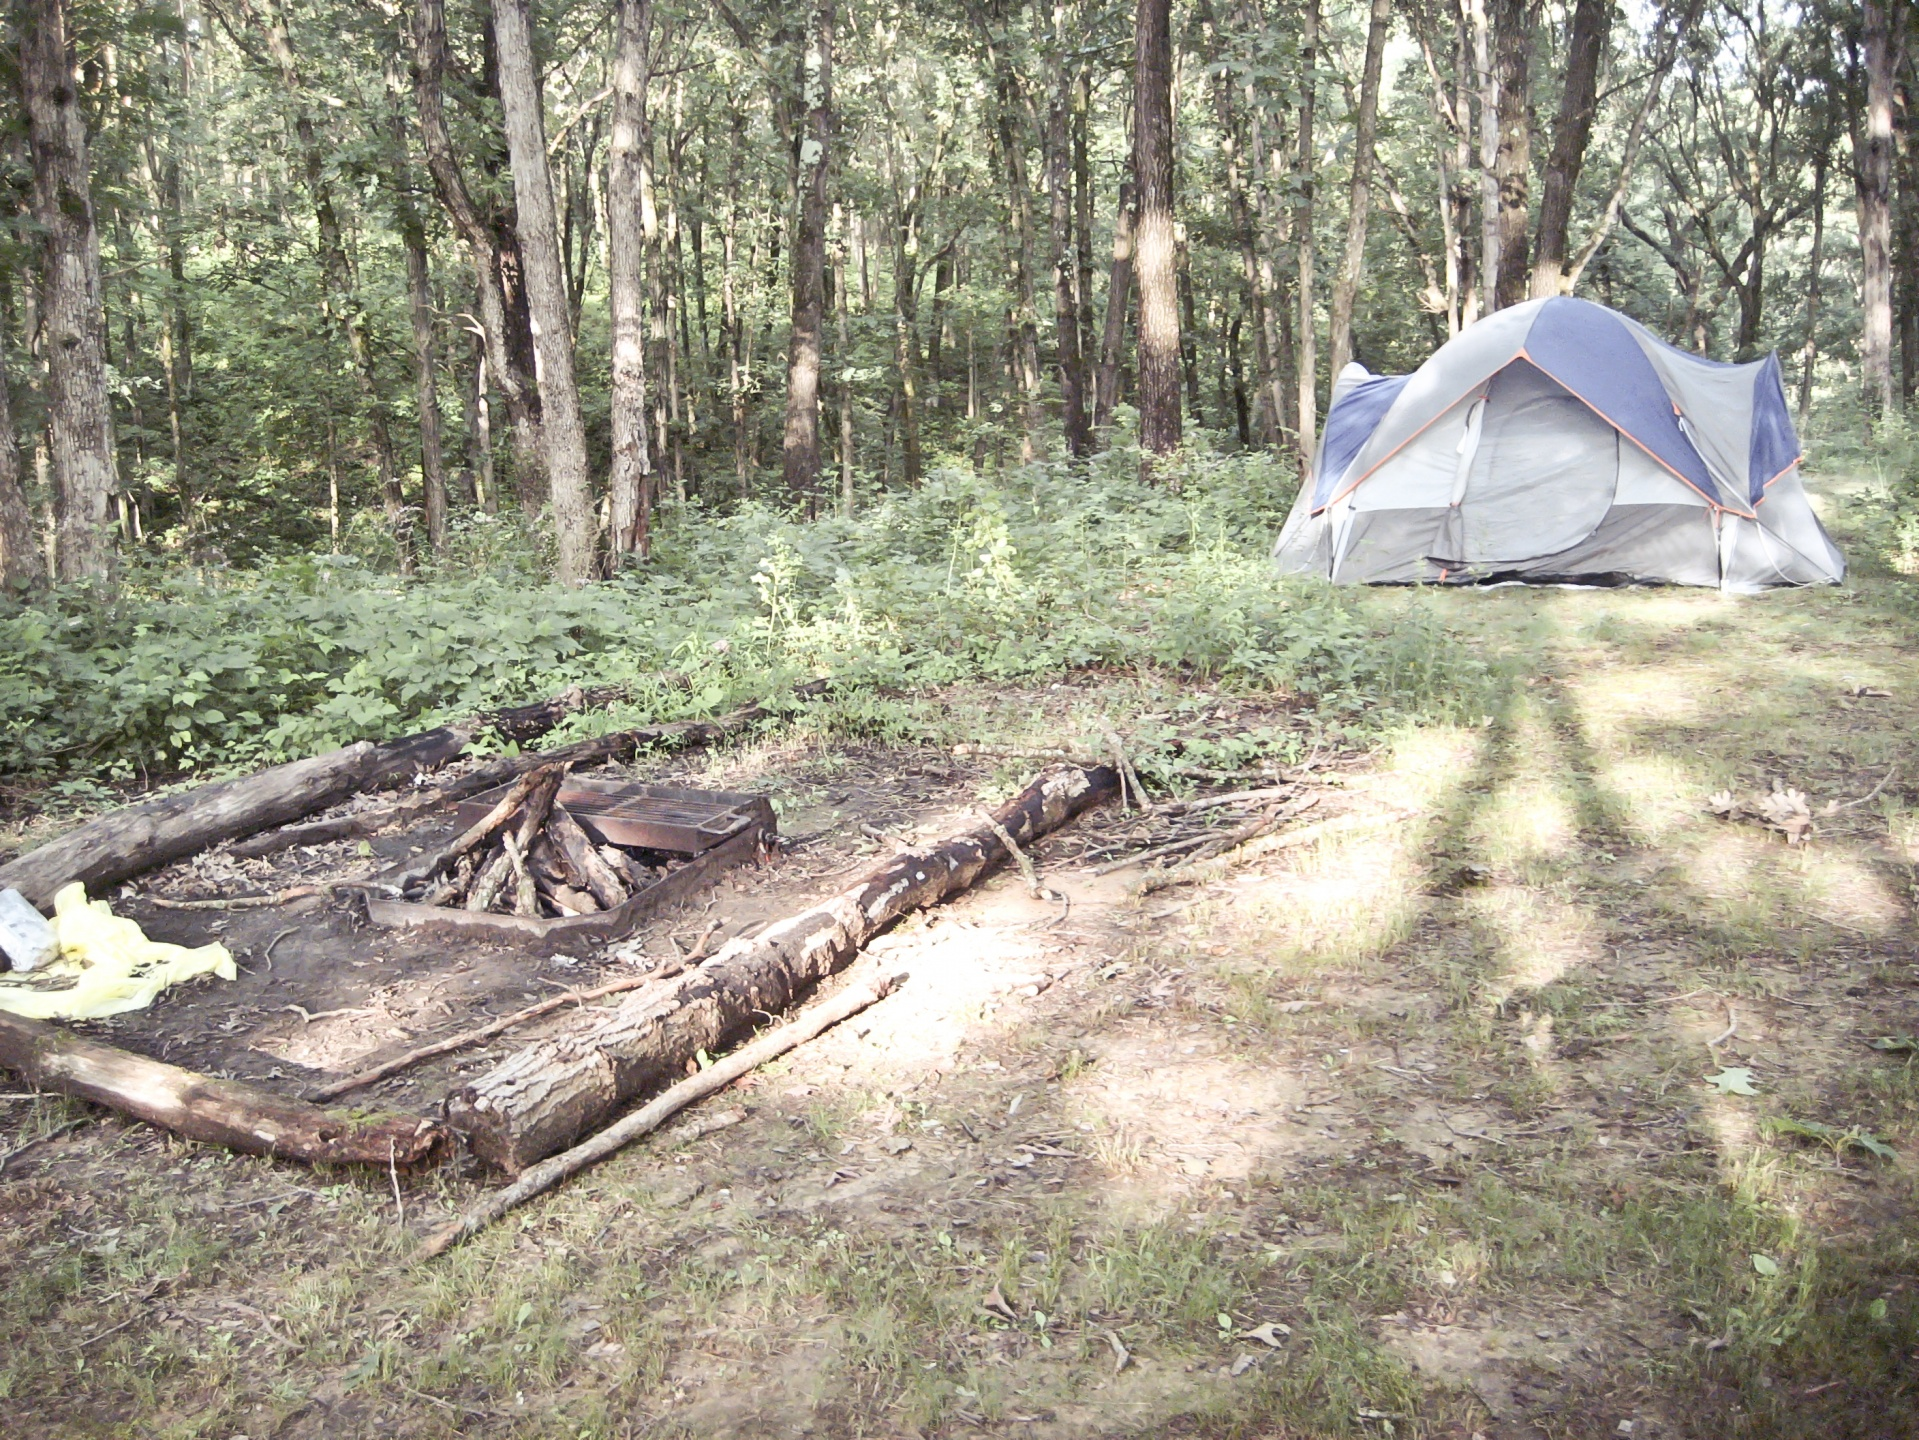 Typical campsite from my youth